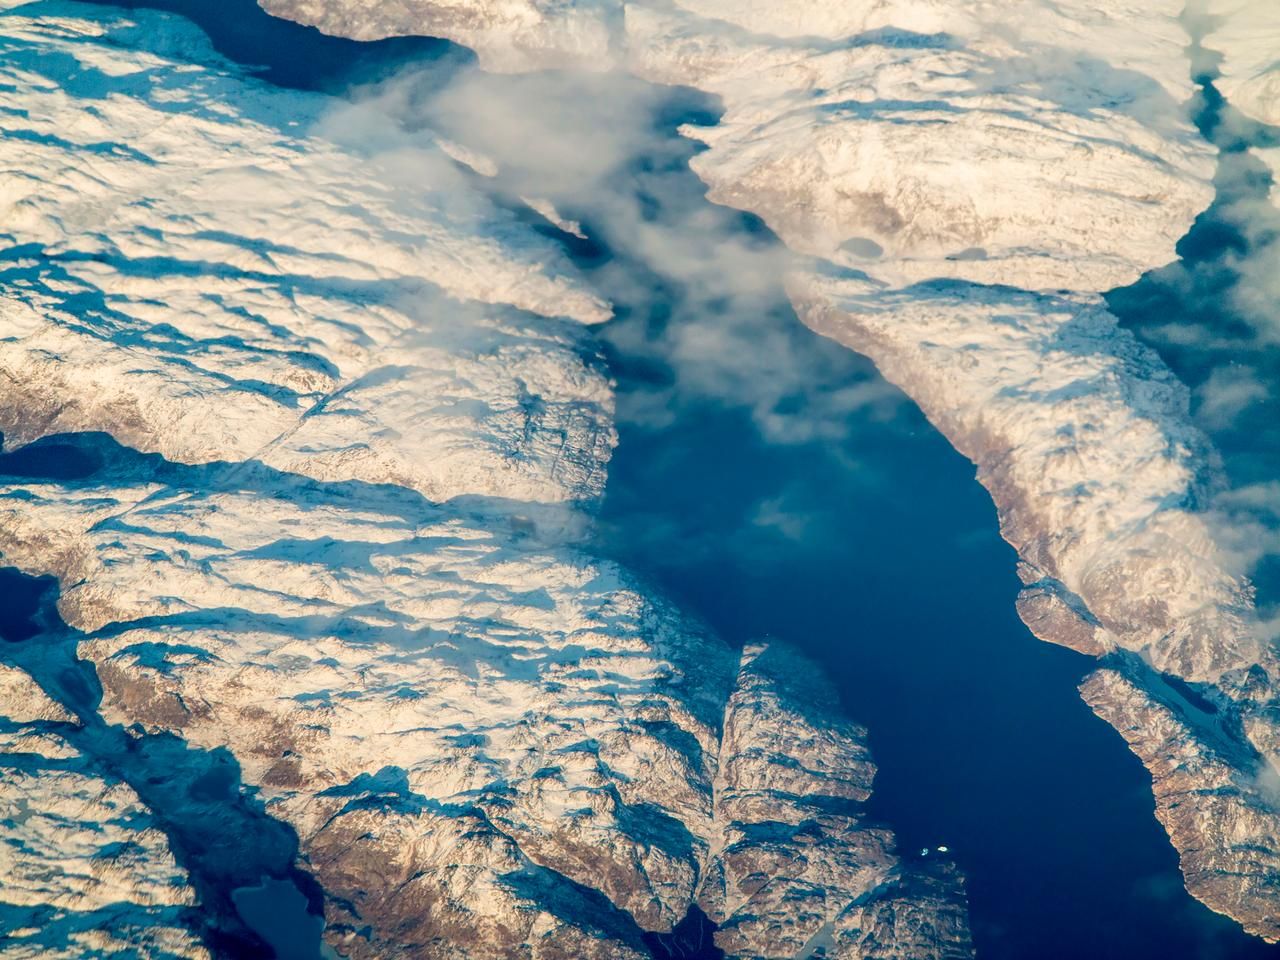 An aerial view of Greenland, where melting glaciers are shrinking faster than they can be replenished